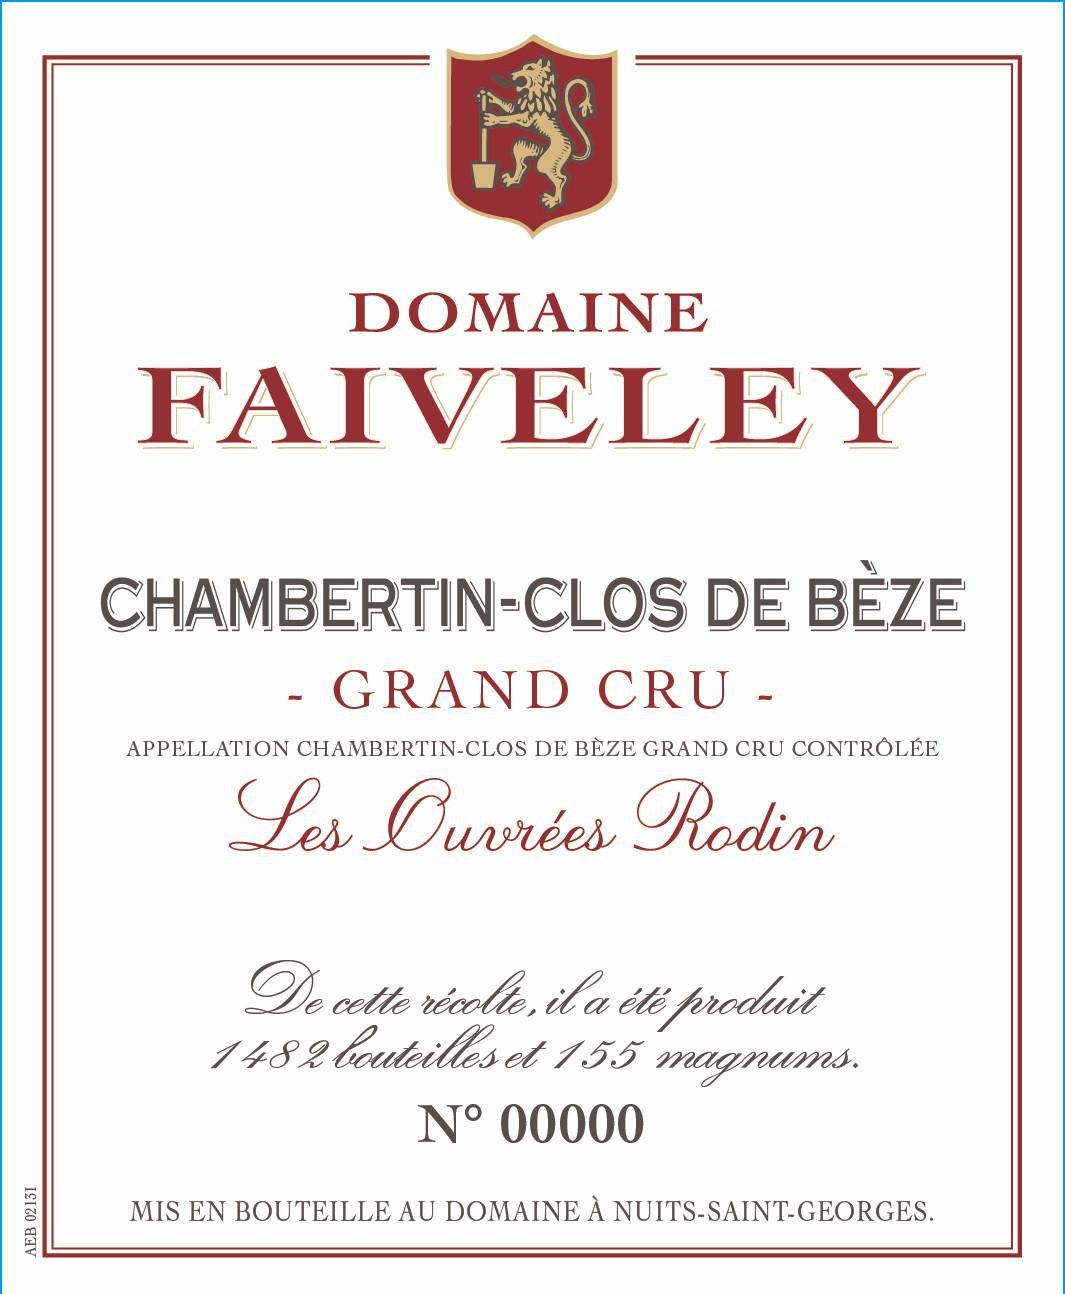 Domaine Faiveley Chambertin Clos Beze Les Ouvrees Rodin Grand Cru 2014 Front Label